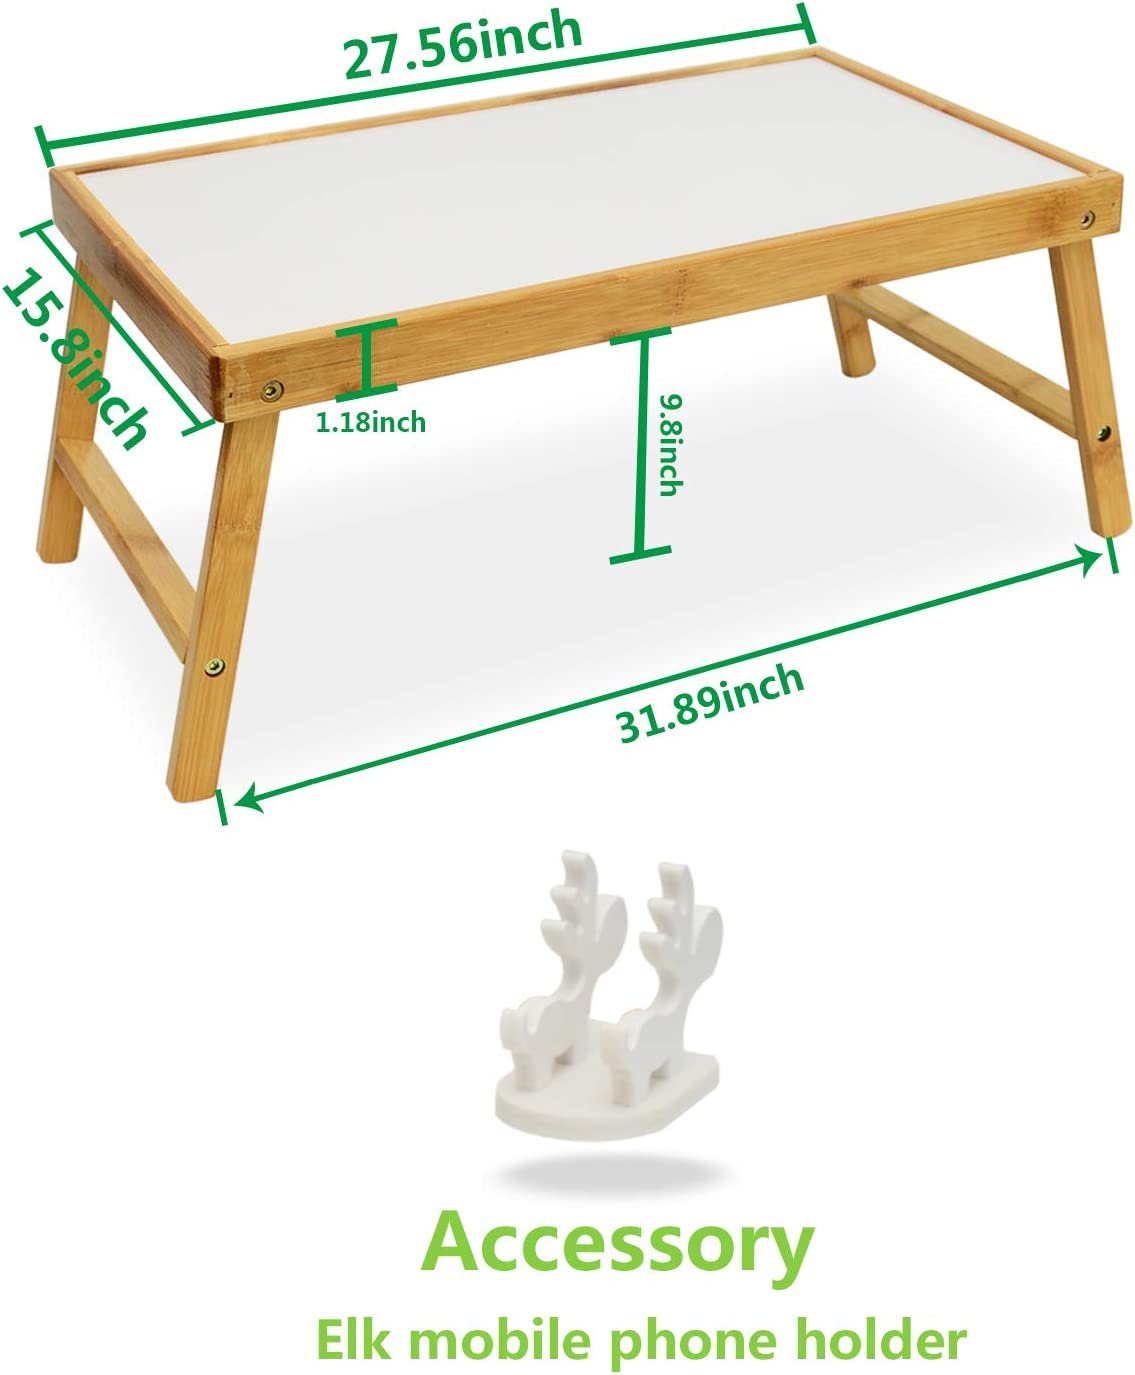 TORIBIO Bamboo Multifunctional Lap Desk Breakfast Serving Bed Tray with Foldable Legs(White)